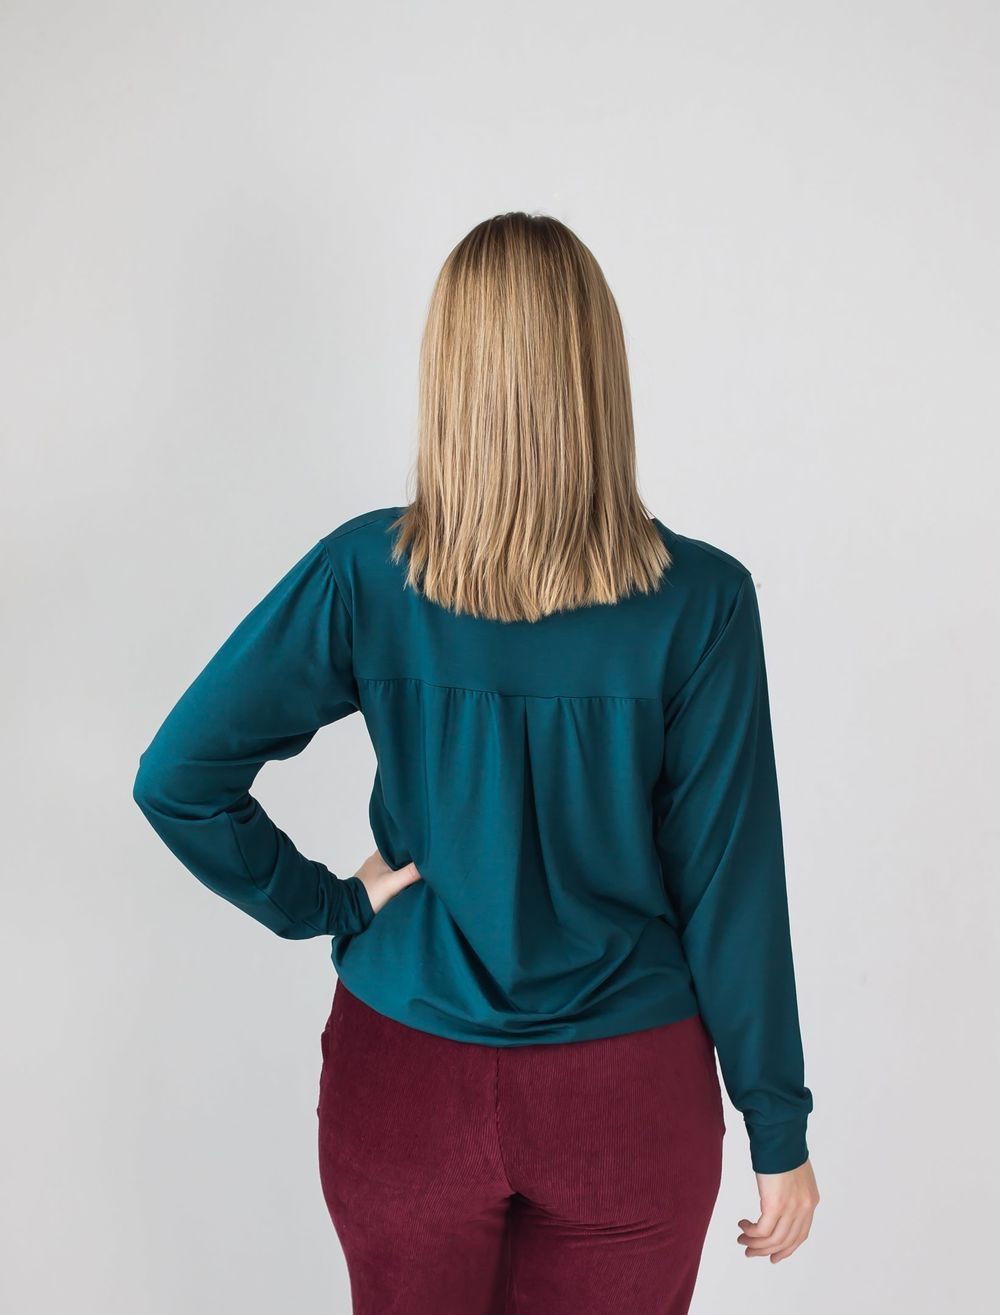 BLAA MINSK SHIRT, DEEP TEAL